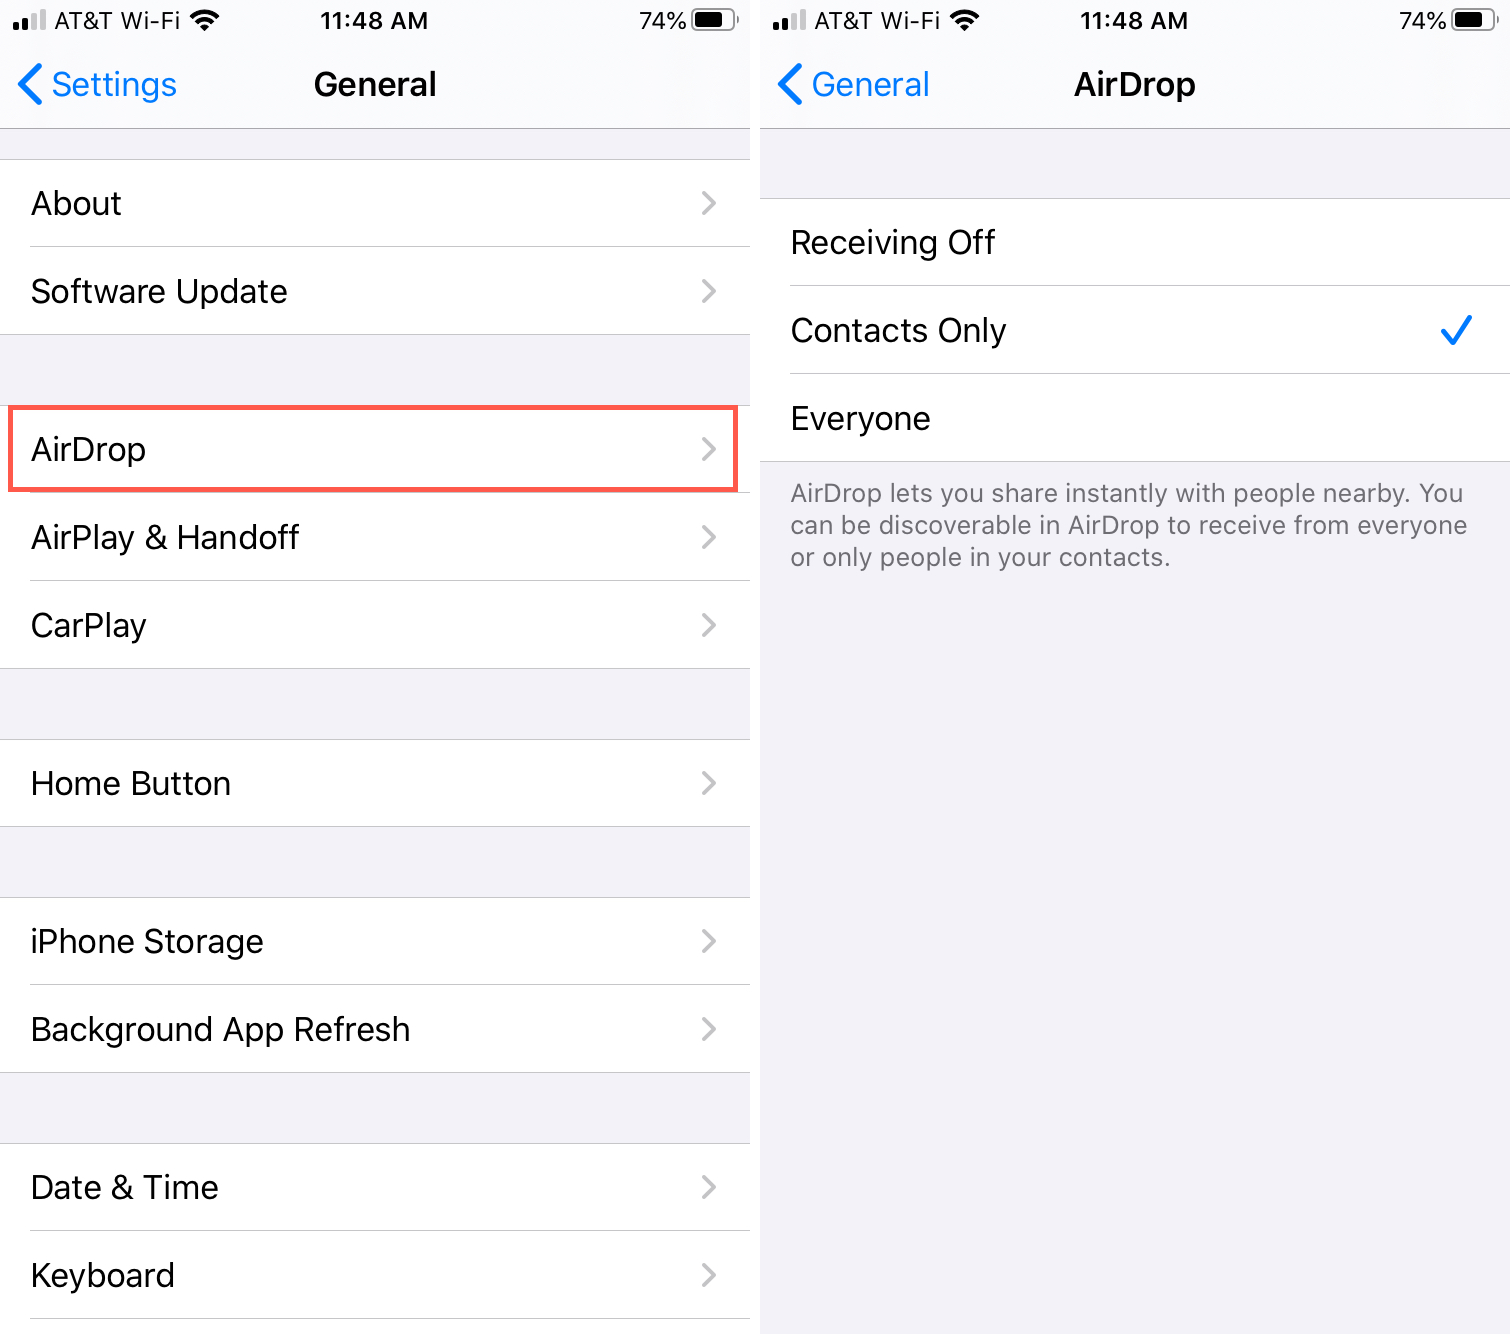 AirDrop Settings iPhone